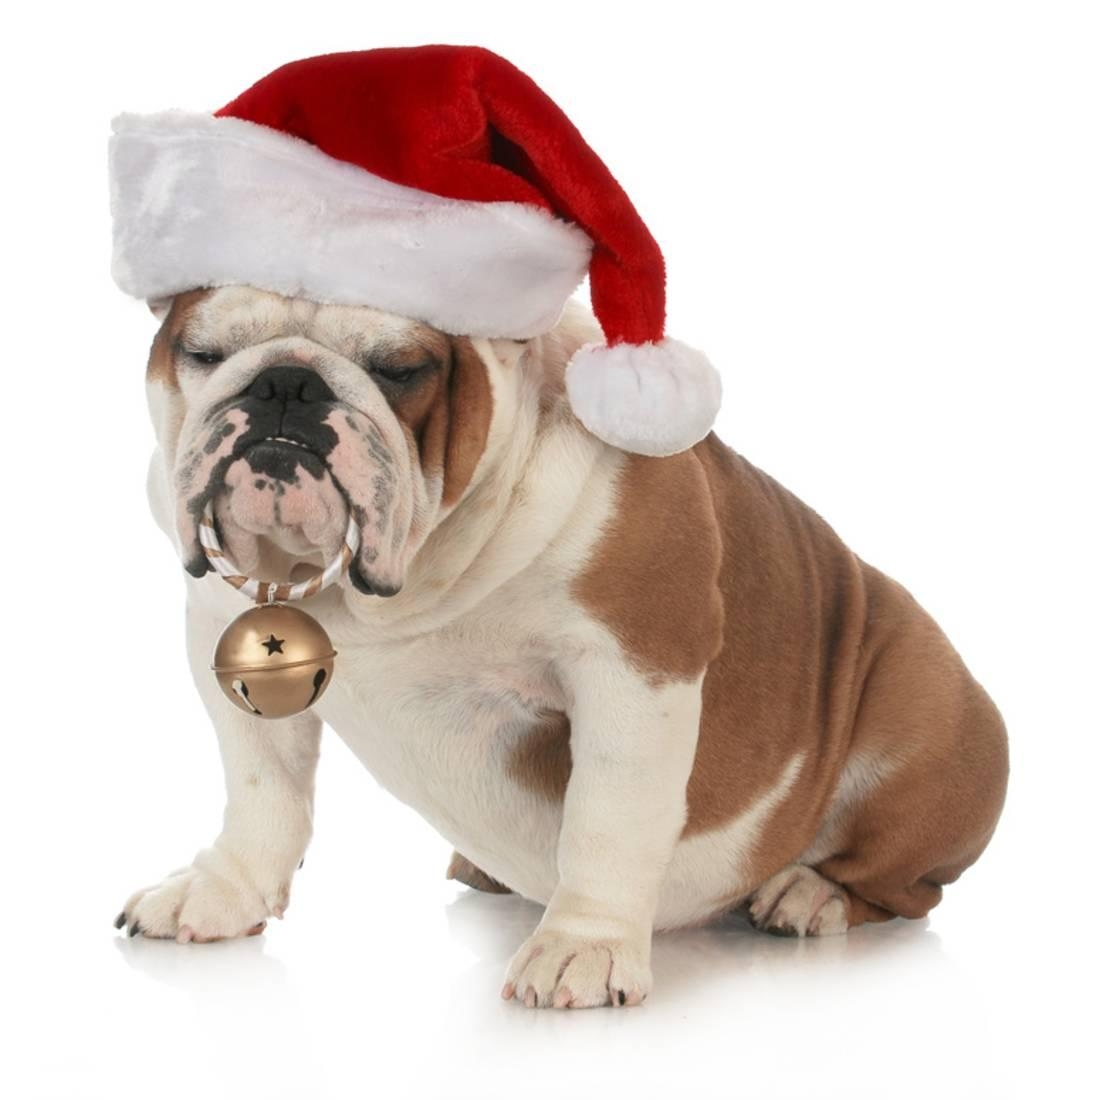 Christmas Dog - English Bulldog Wearing Santa Hat Holding Christmas ...